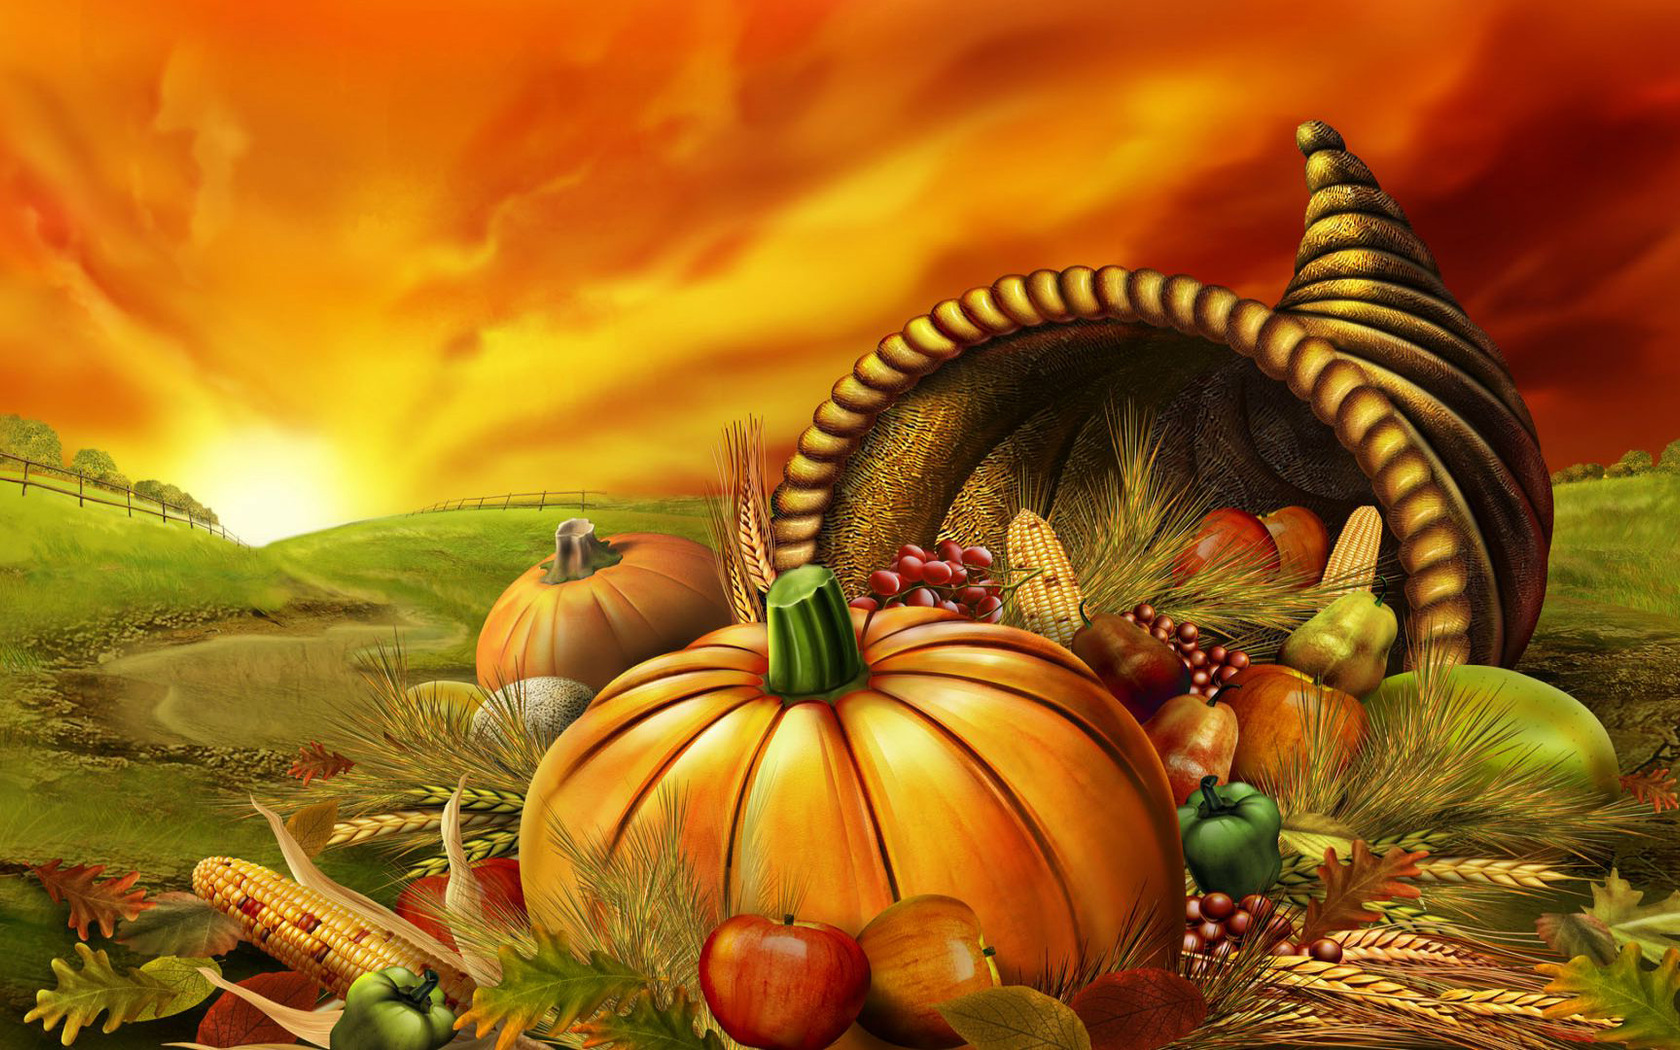 Harvest wallpapers for desktop 1024x768 wallpapersafari - Wallpaper 1024x768 ...